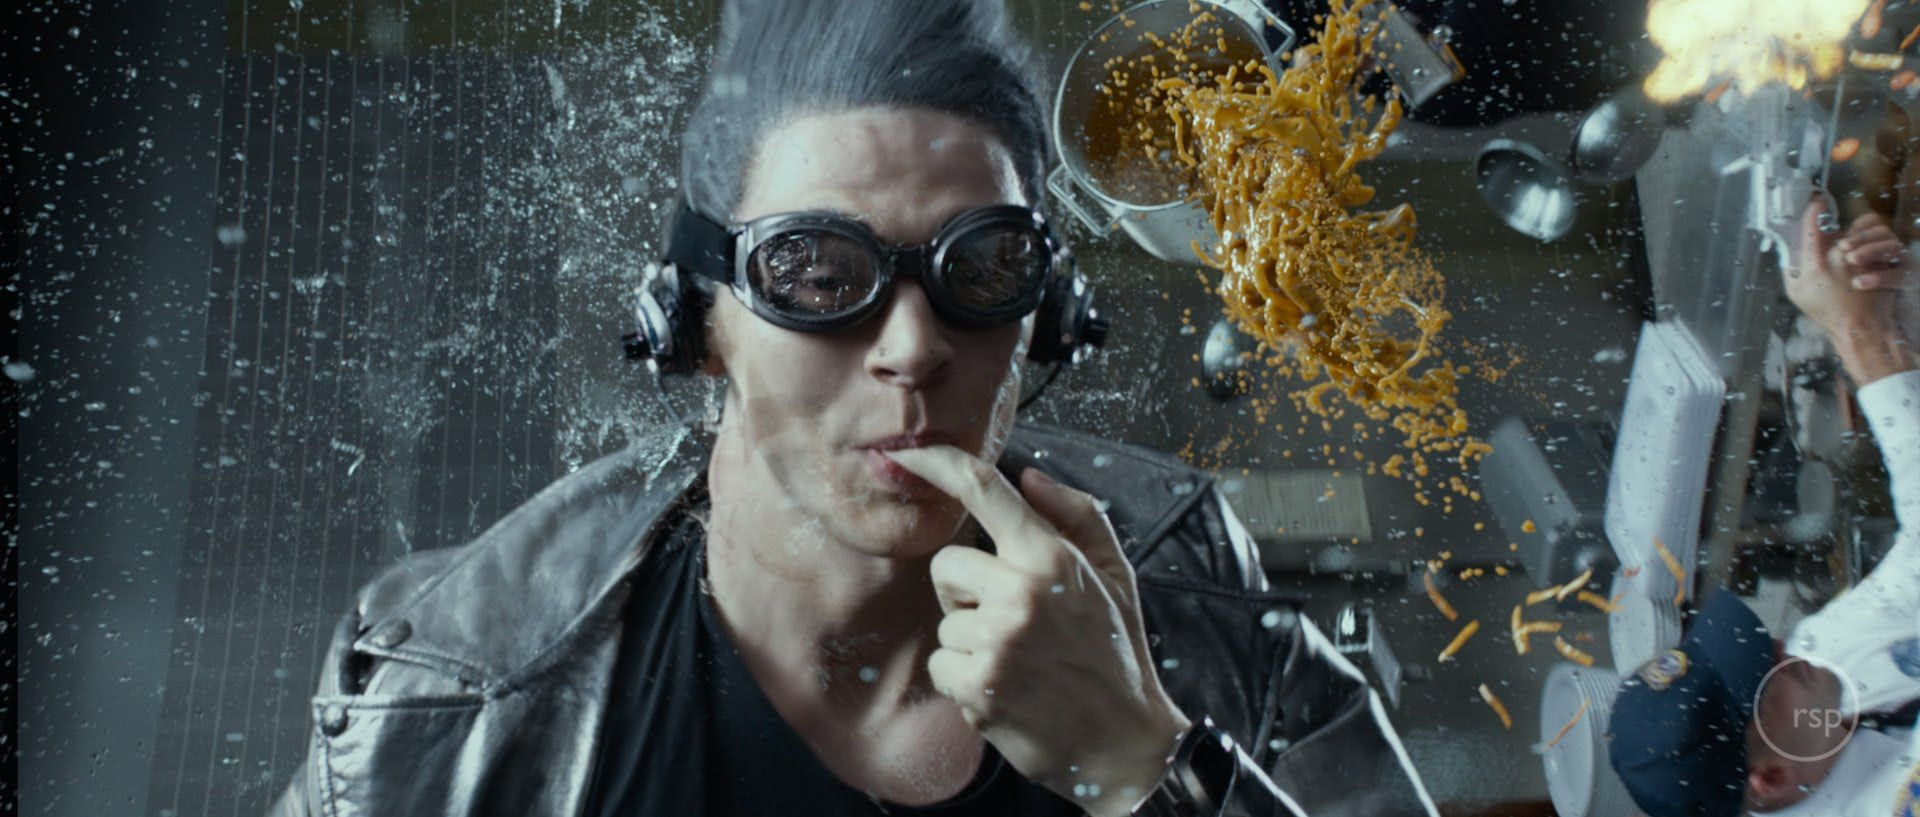 Evan Peters Quicksilver Scene In X Men Days Of Future Past The Best Scene In The Movie By Days Of Future Past Bryan Singer Evan Peters